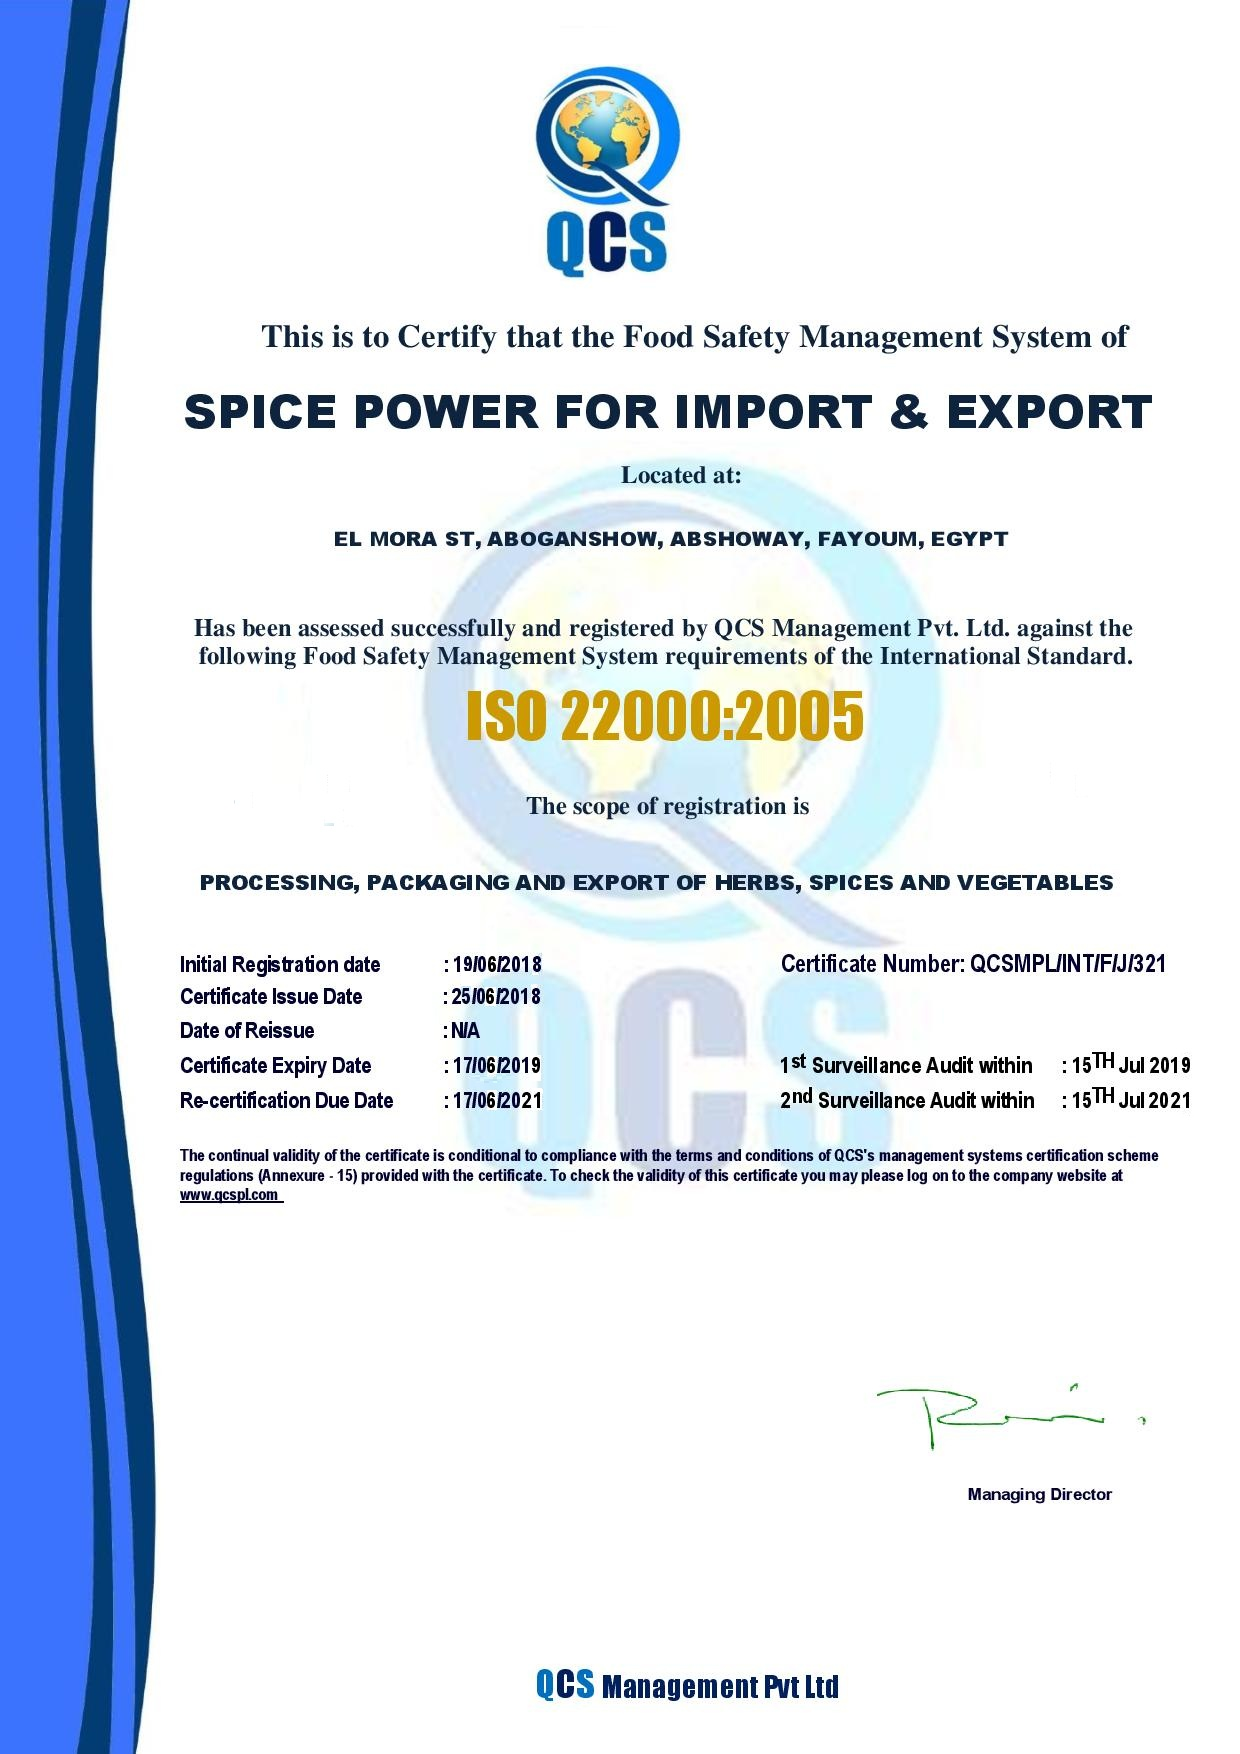 CERTIFICATE OF COMPLIANCE - FSMS spice power - 22000-page-001